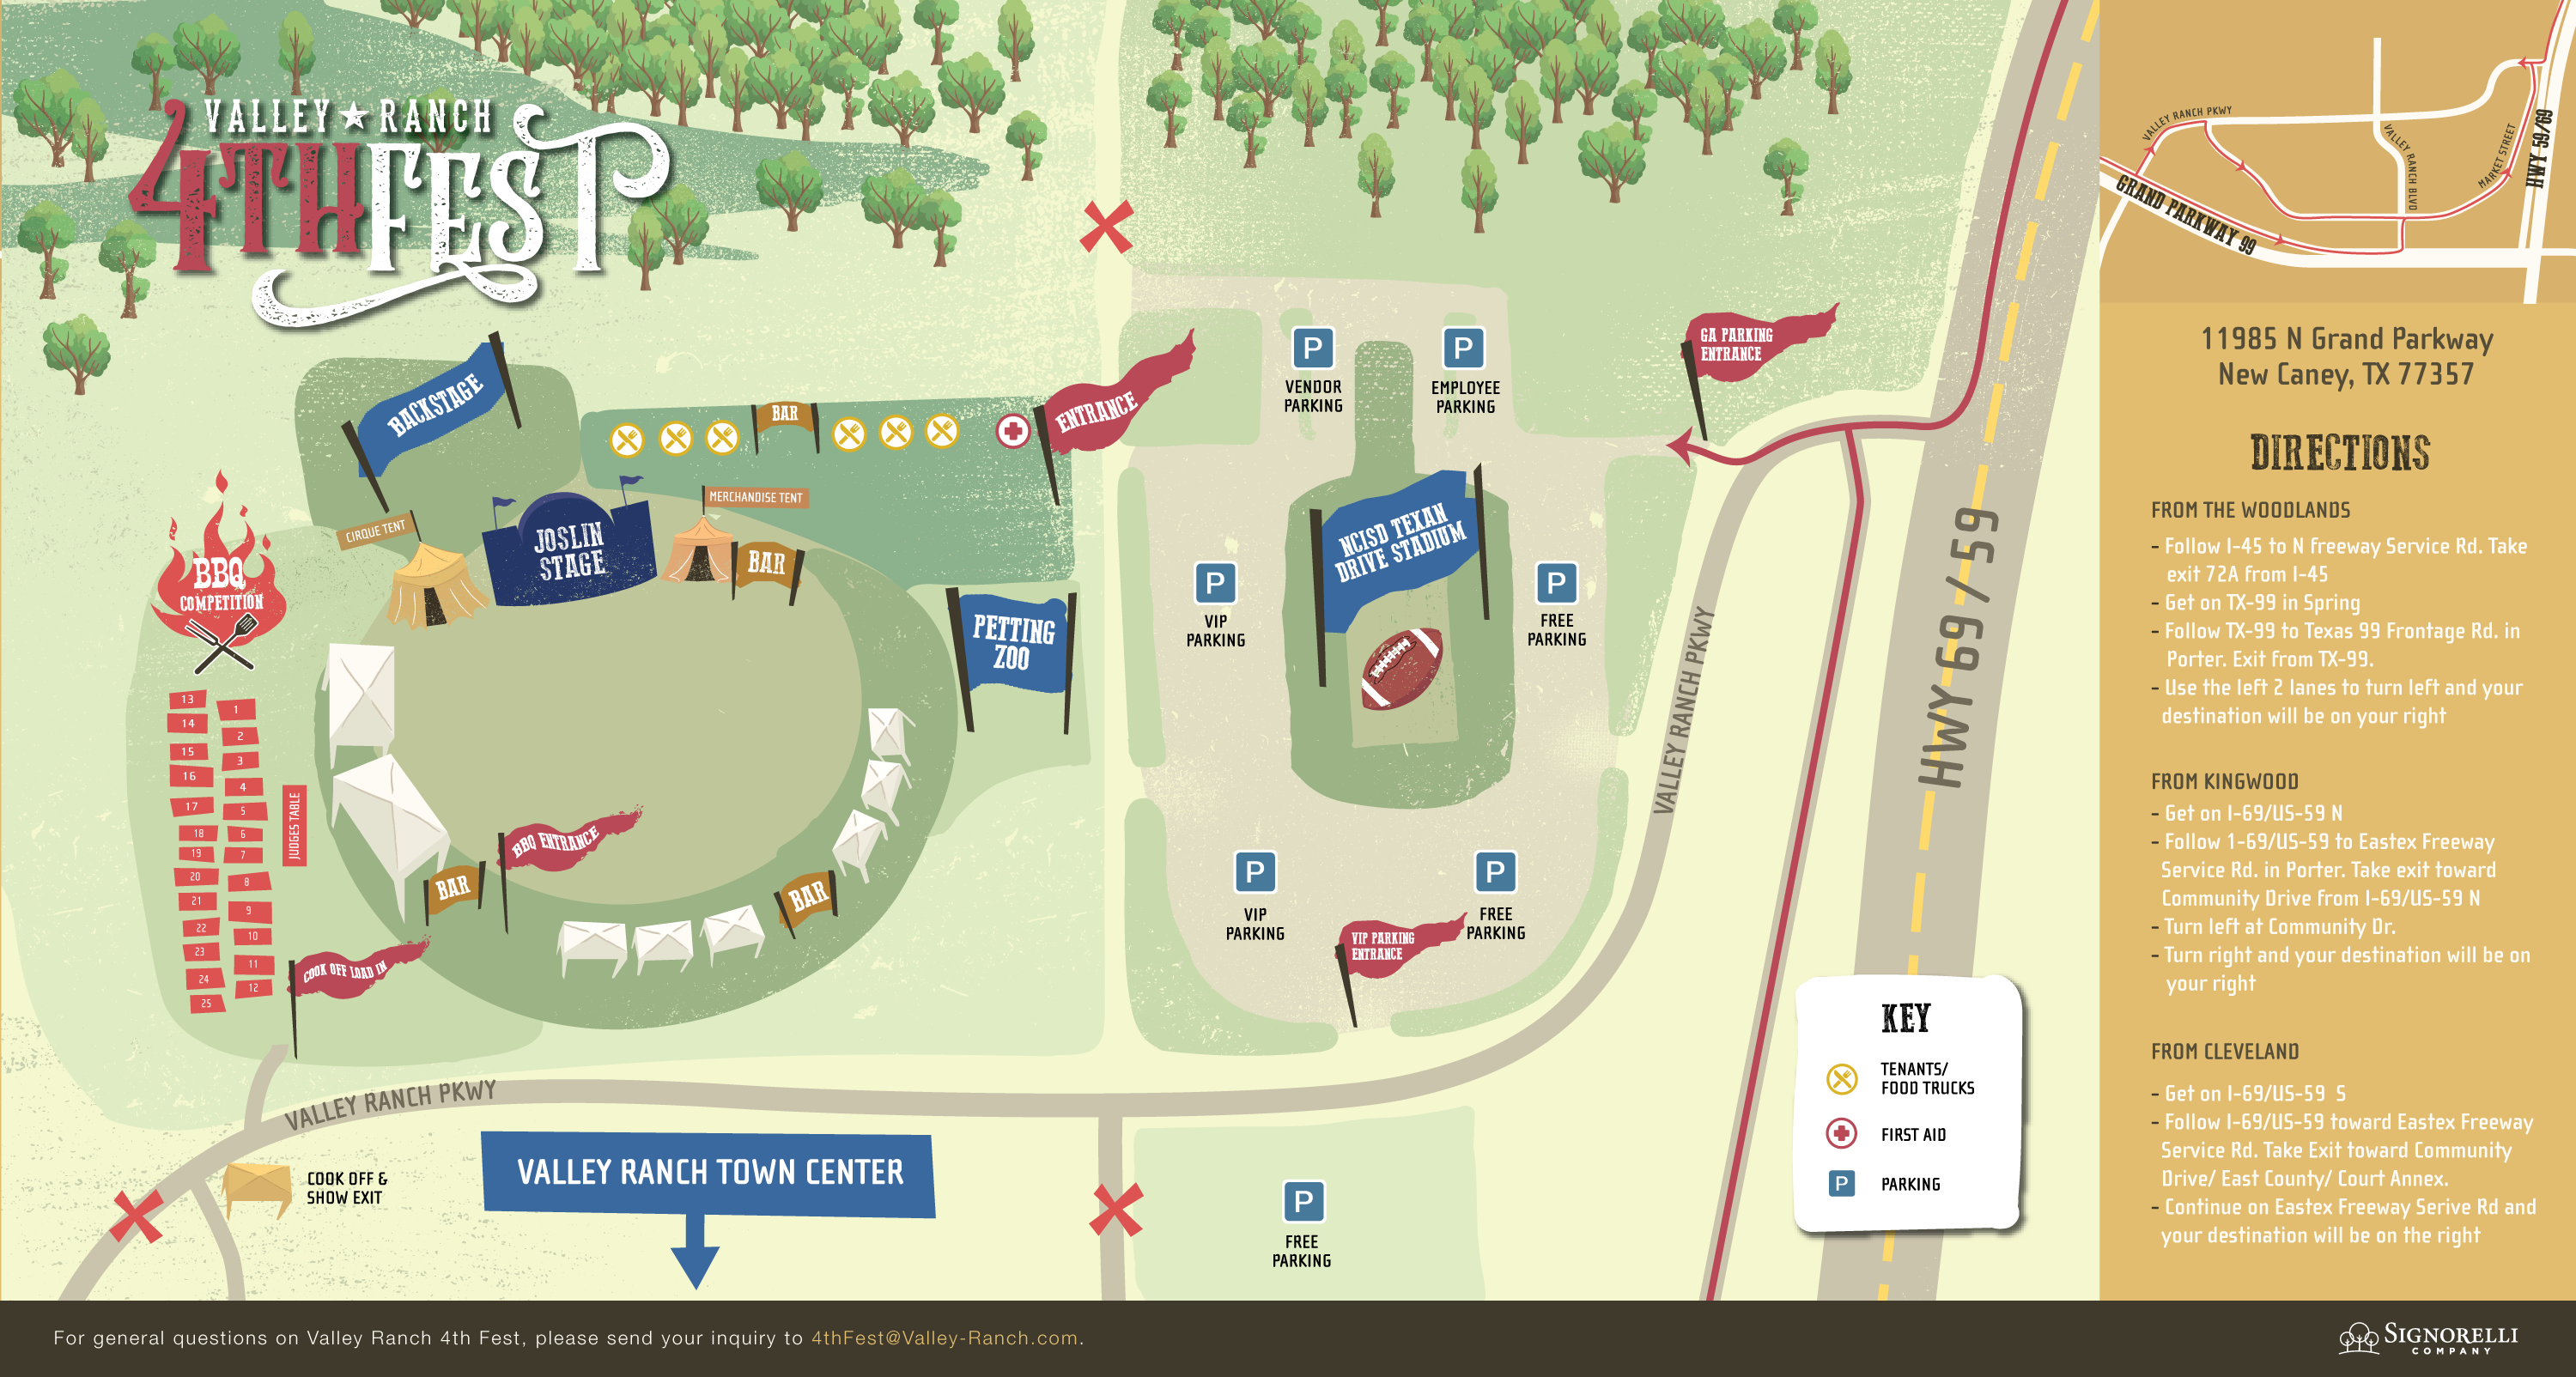 Valley Ranch 4th Fest Site Plan